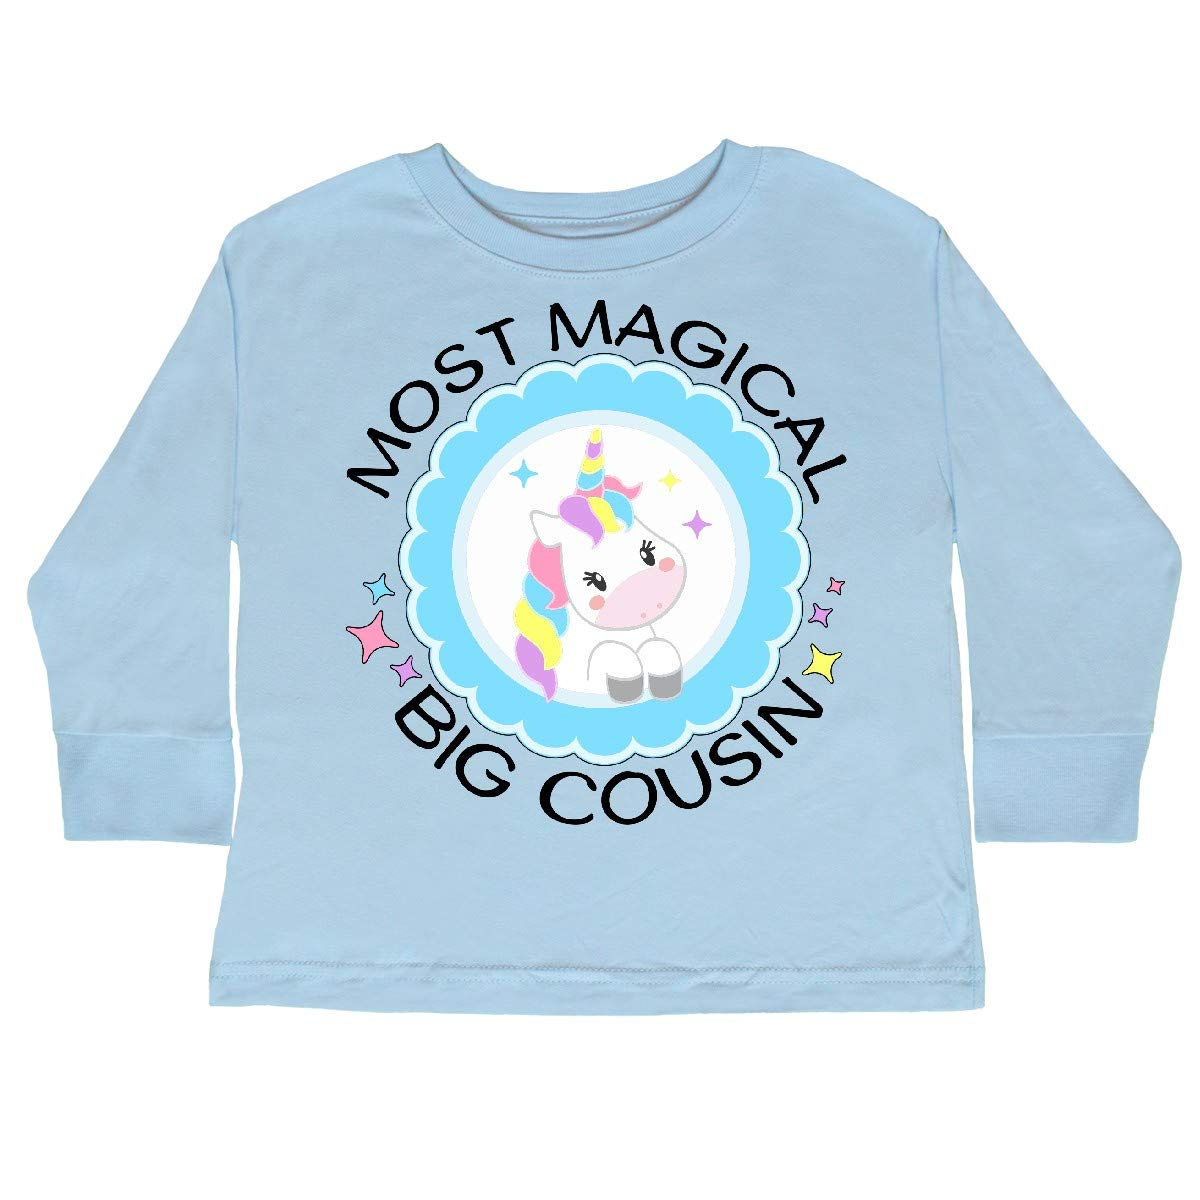 Cute Toddler Long Sleeve T-Shirt inktastic Most Magical Big Cousin Badge